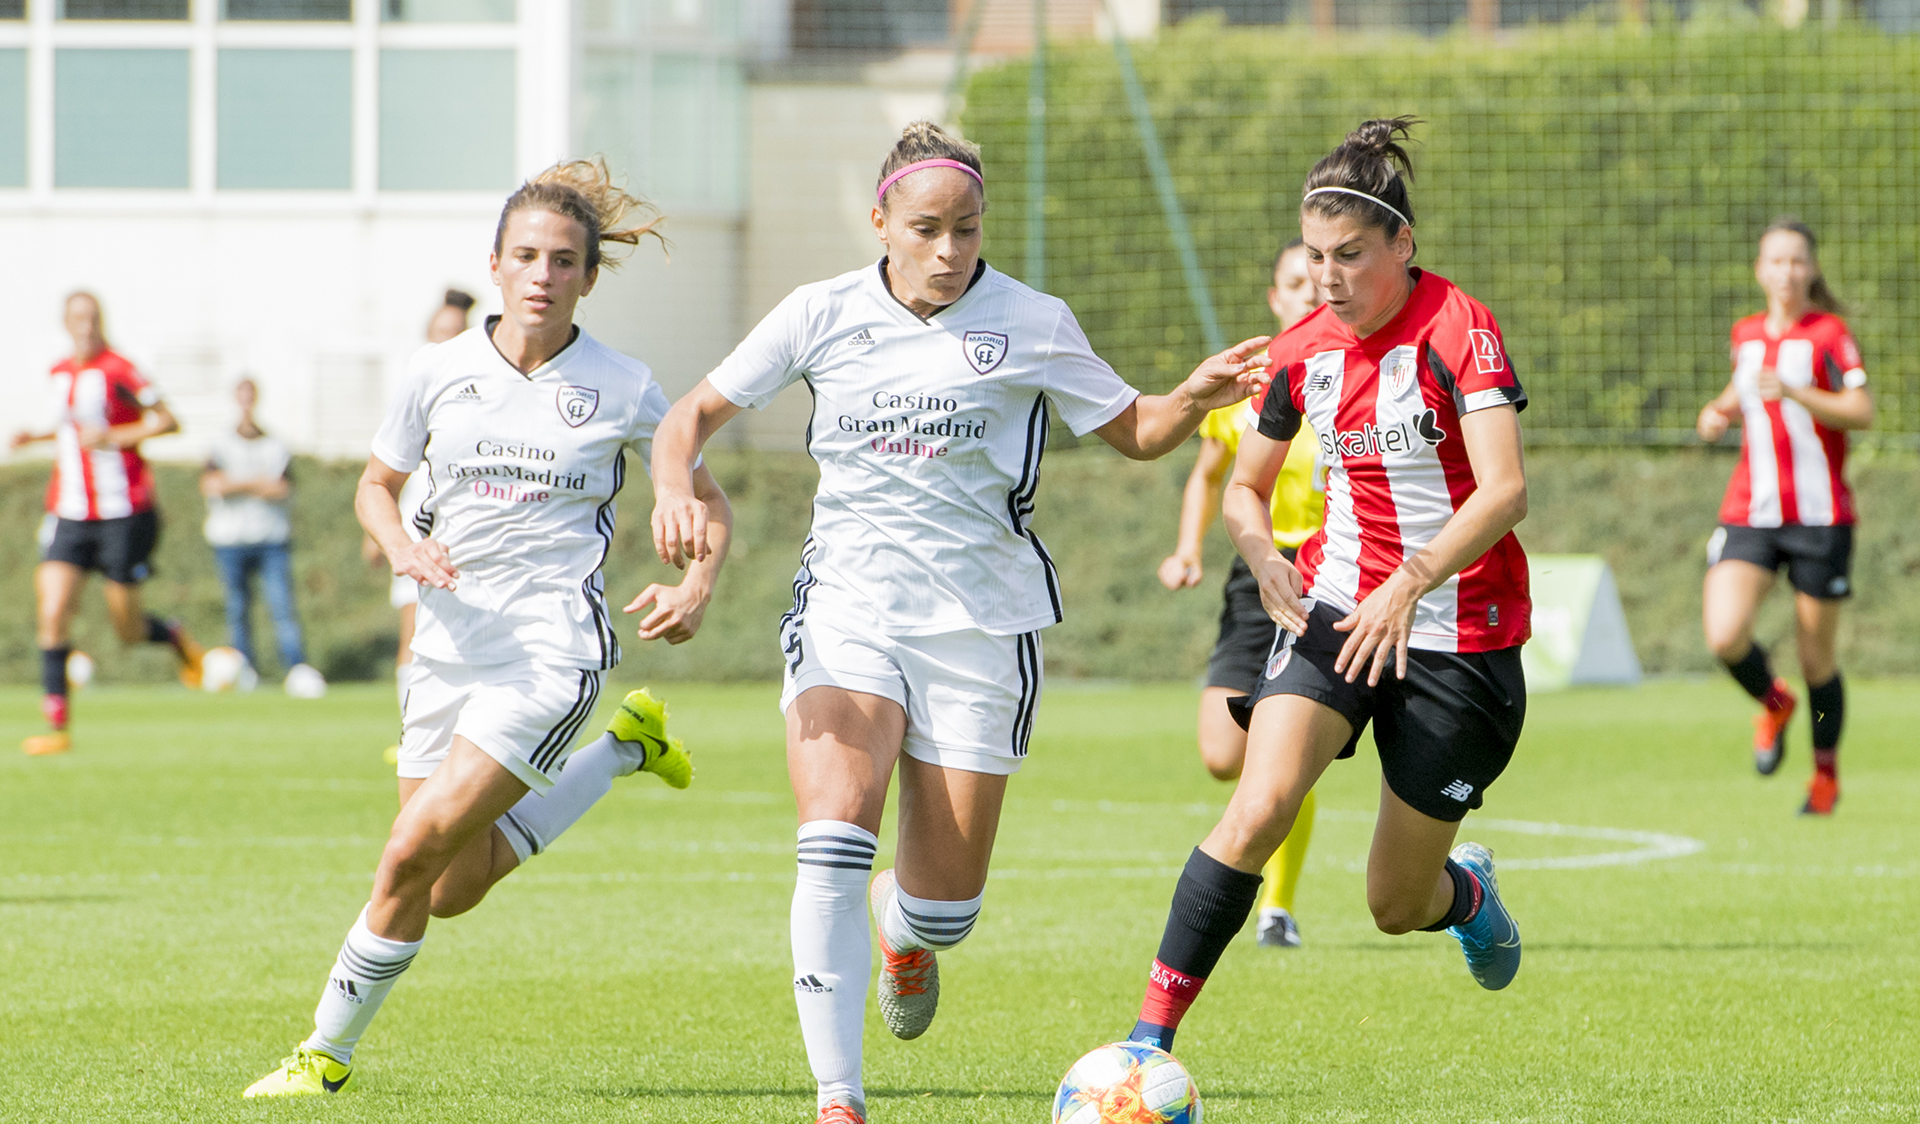 Solvent debut at home of Athletic Club ladies' team